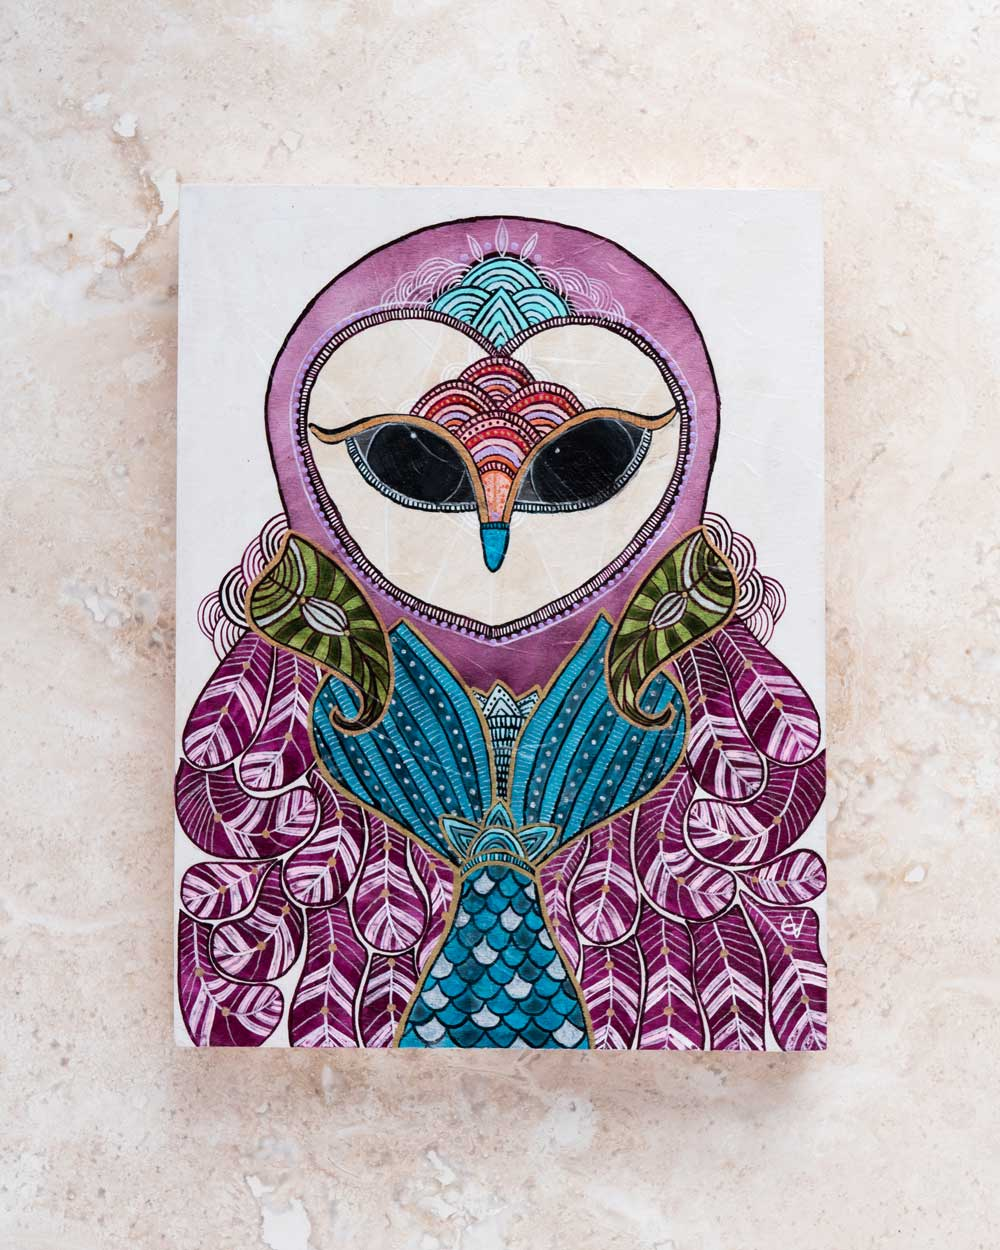 fishtail_owl_painting_wood_panel_eve_devore.jpg